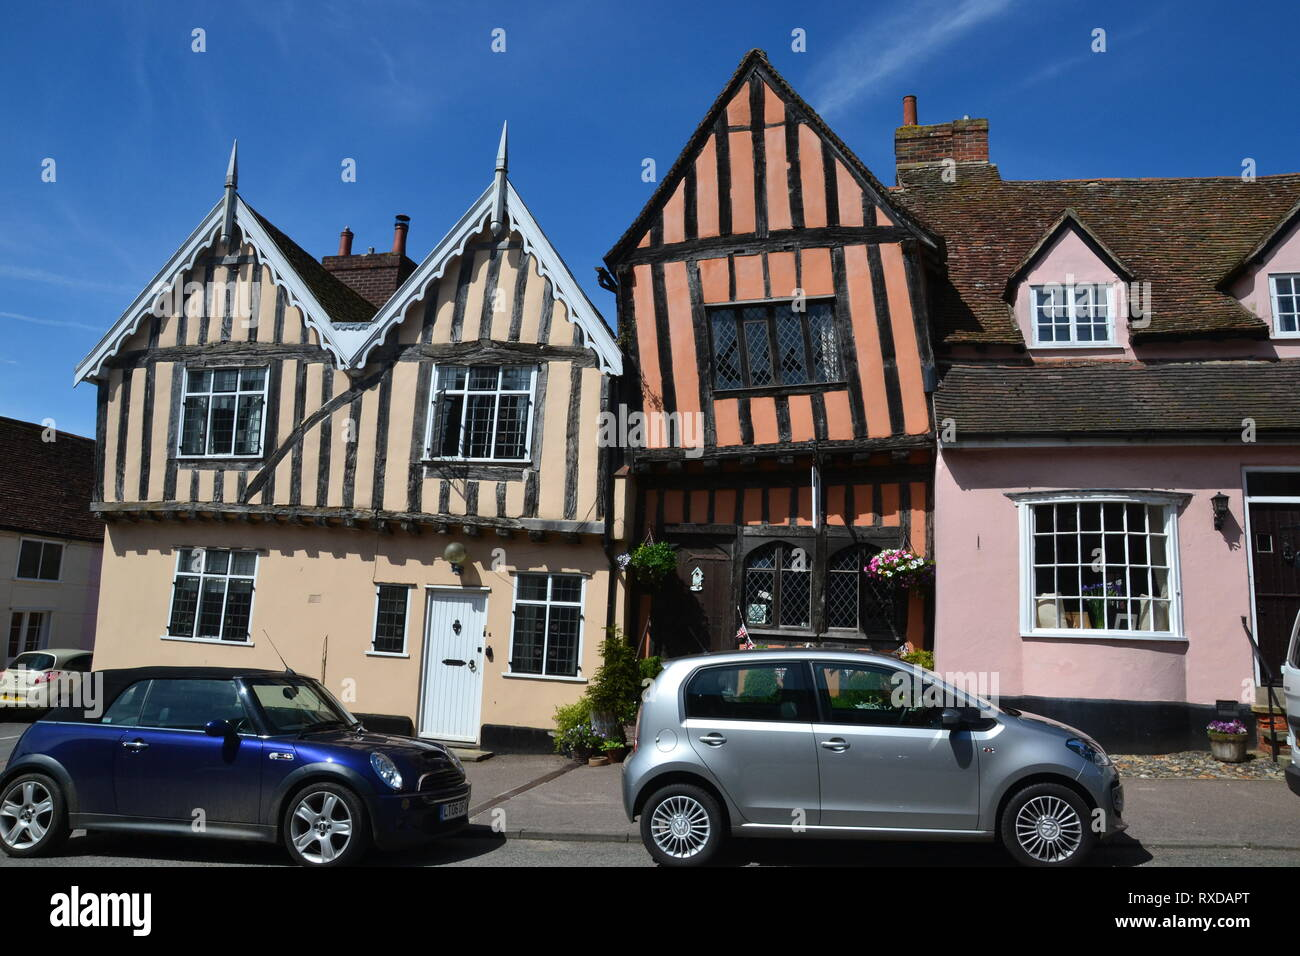 Historic Tudor half-timbered buildings in Lavenham high Street, Suffolk, UK. Sunny day. - Stock Image